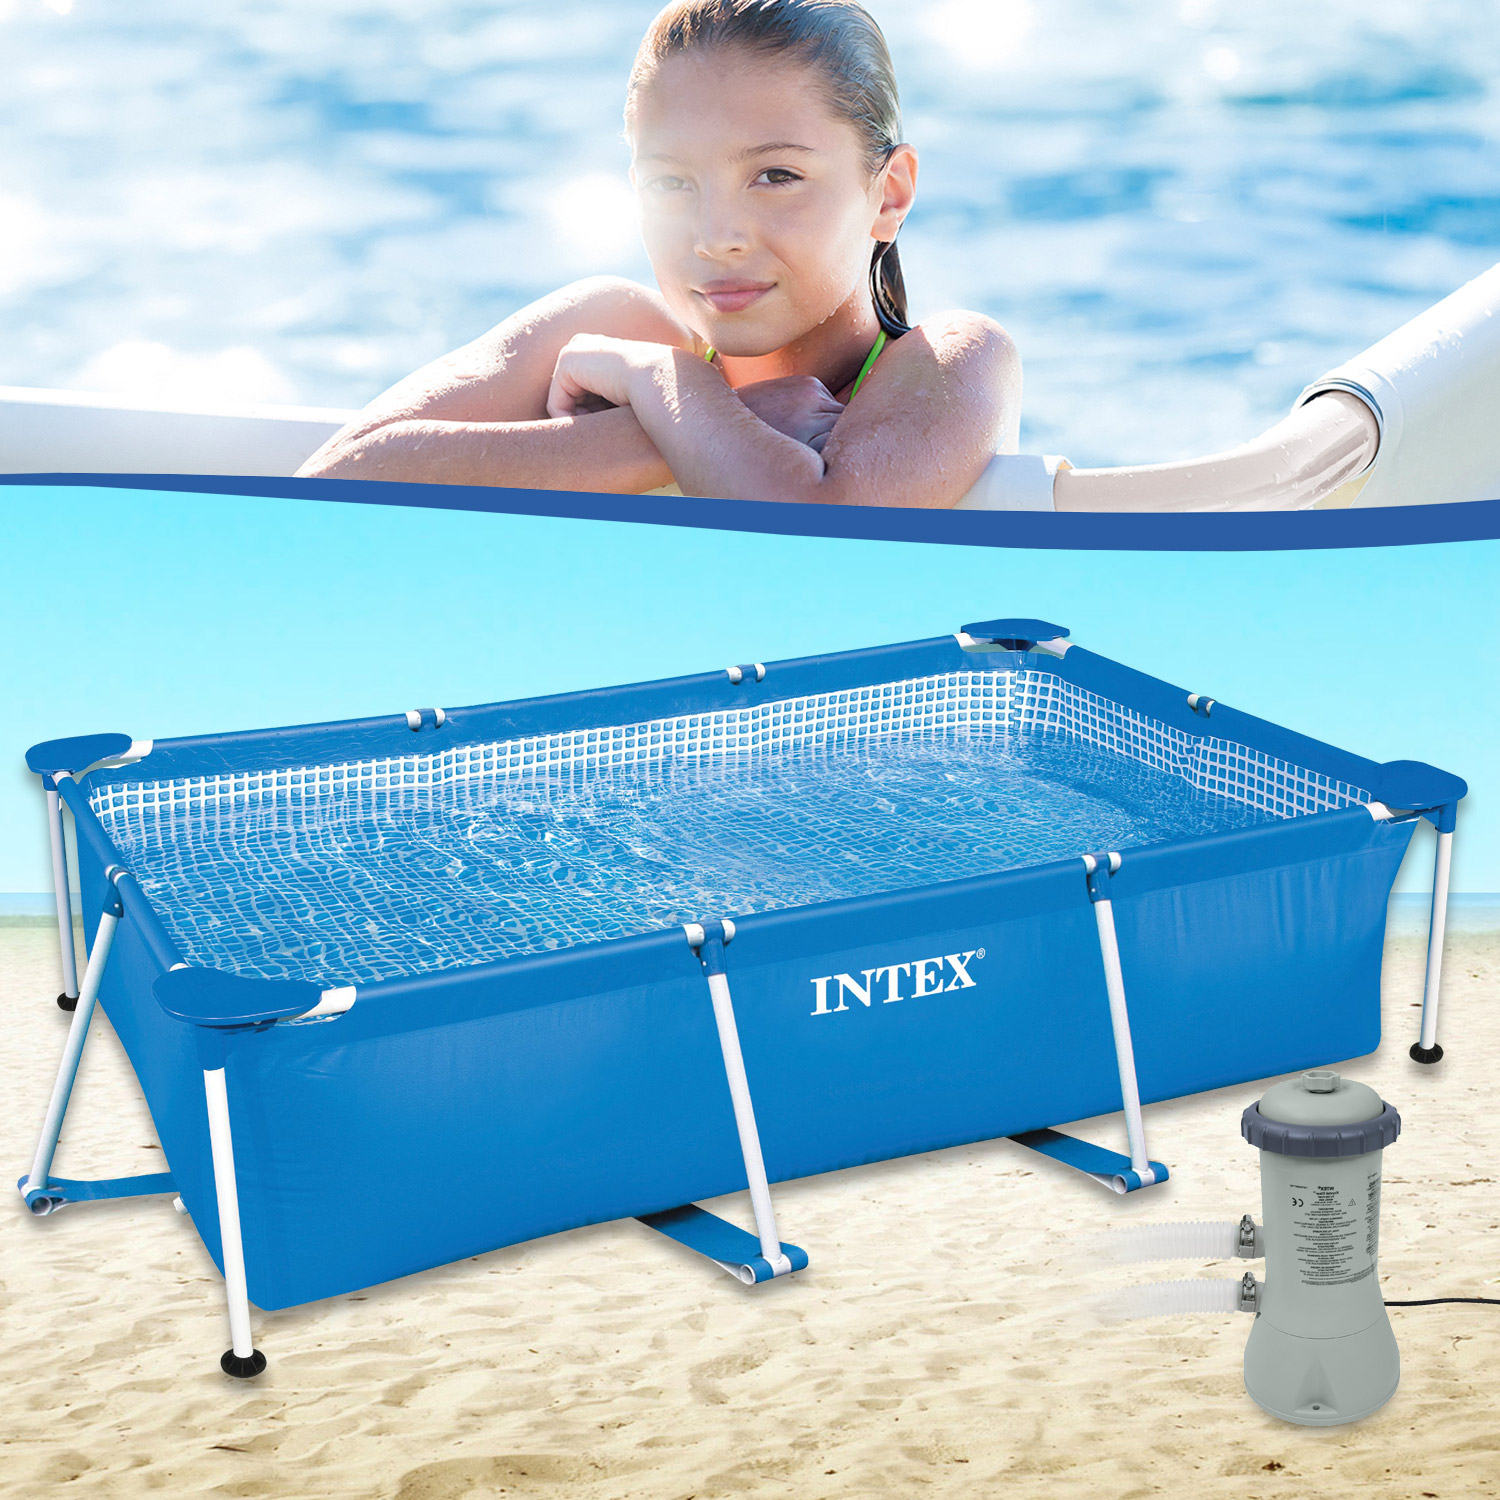 Intex 220 x 150 x 60 cm swimming pool schwimmbecken for Intex pool 150 cm tief